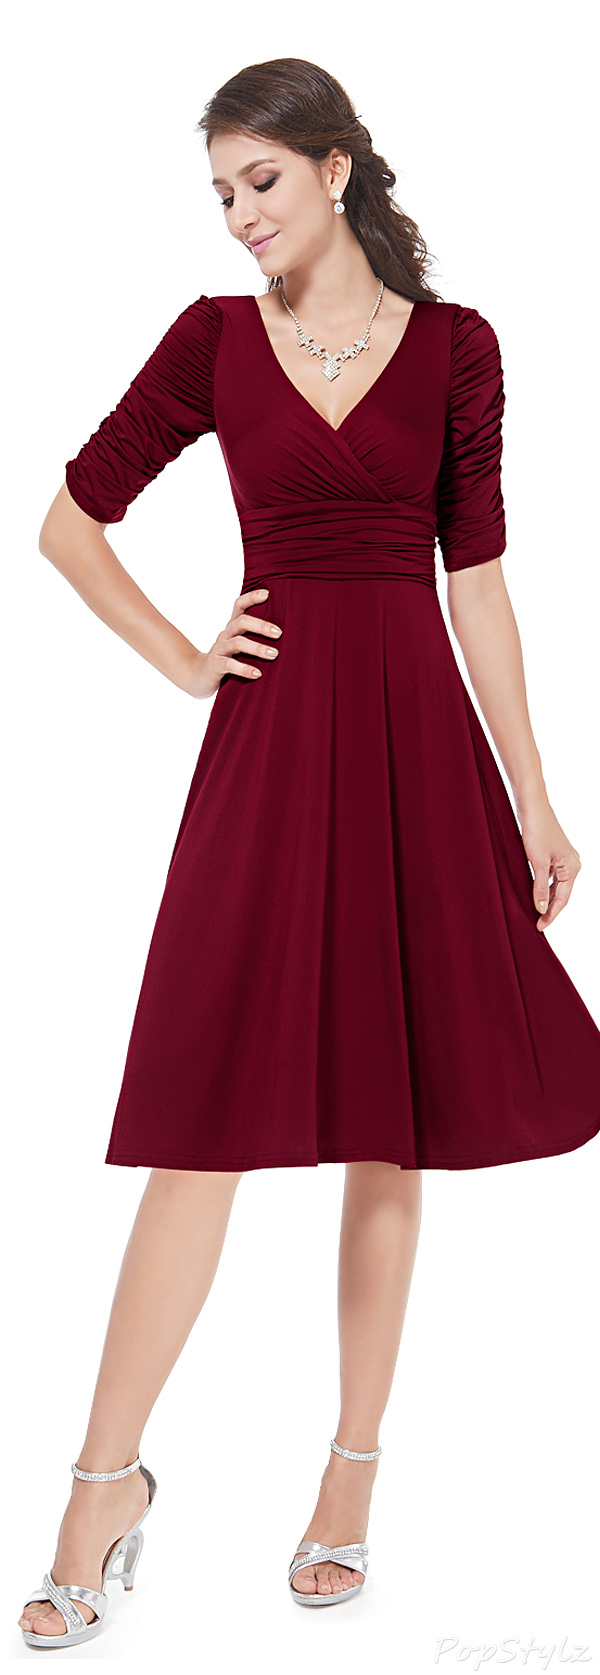 Ever Pretty 03632 3/4 Sleeve Ruched Waist Classy V-Neck Casual Cocktail Dress